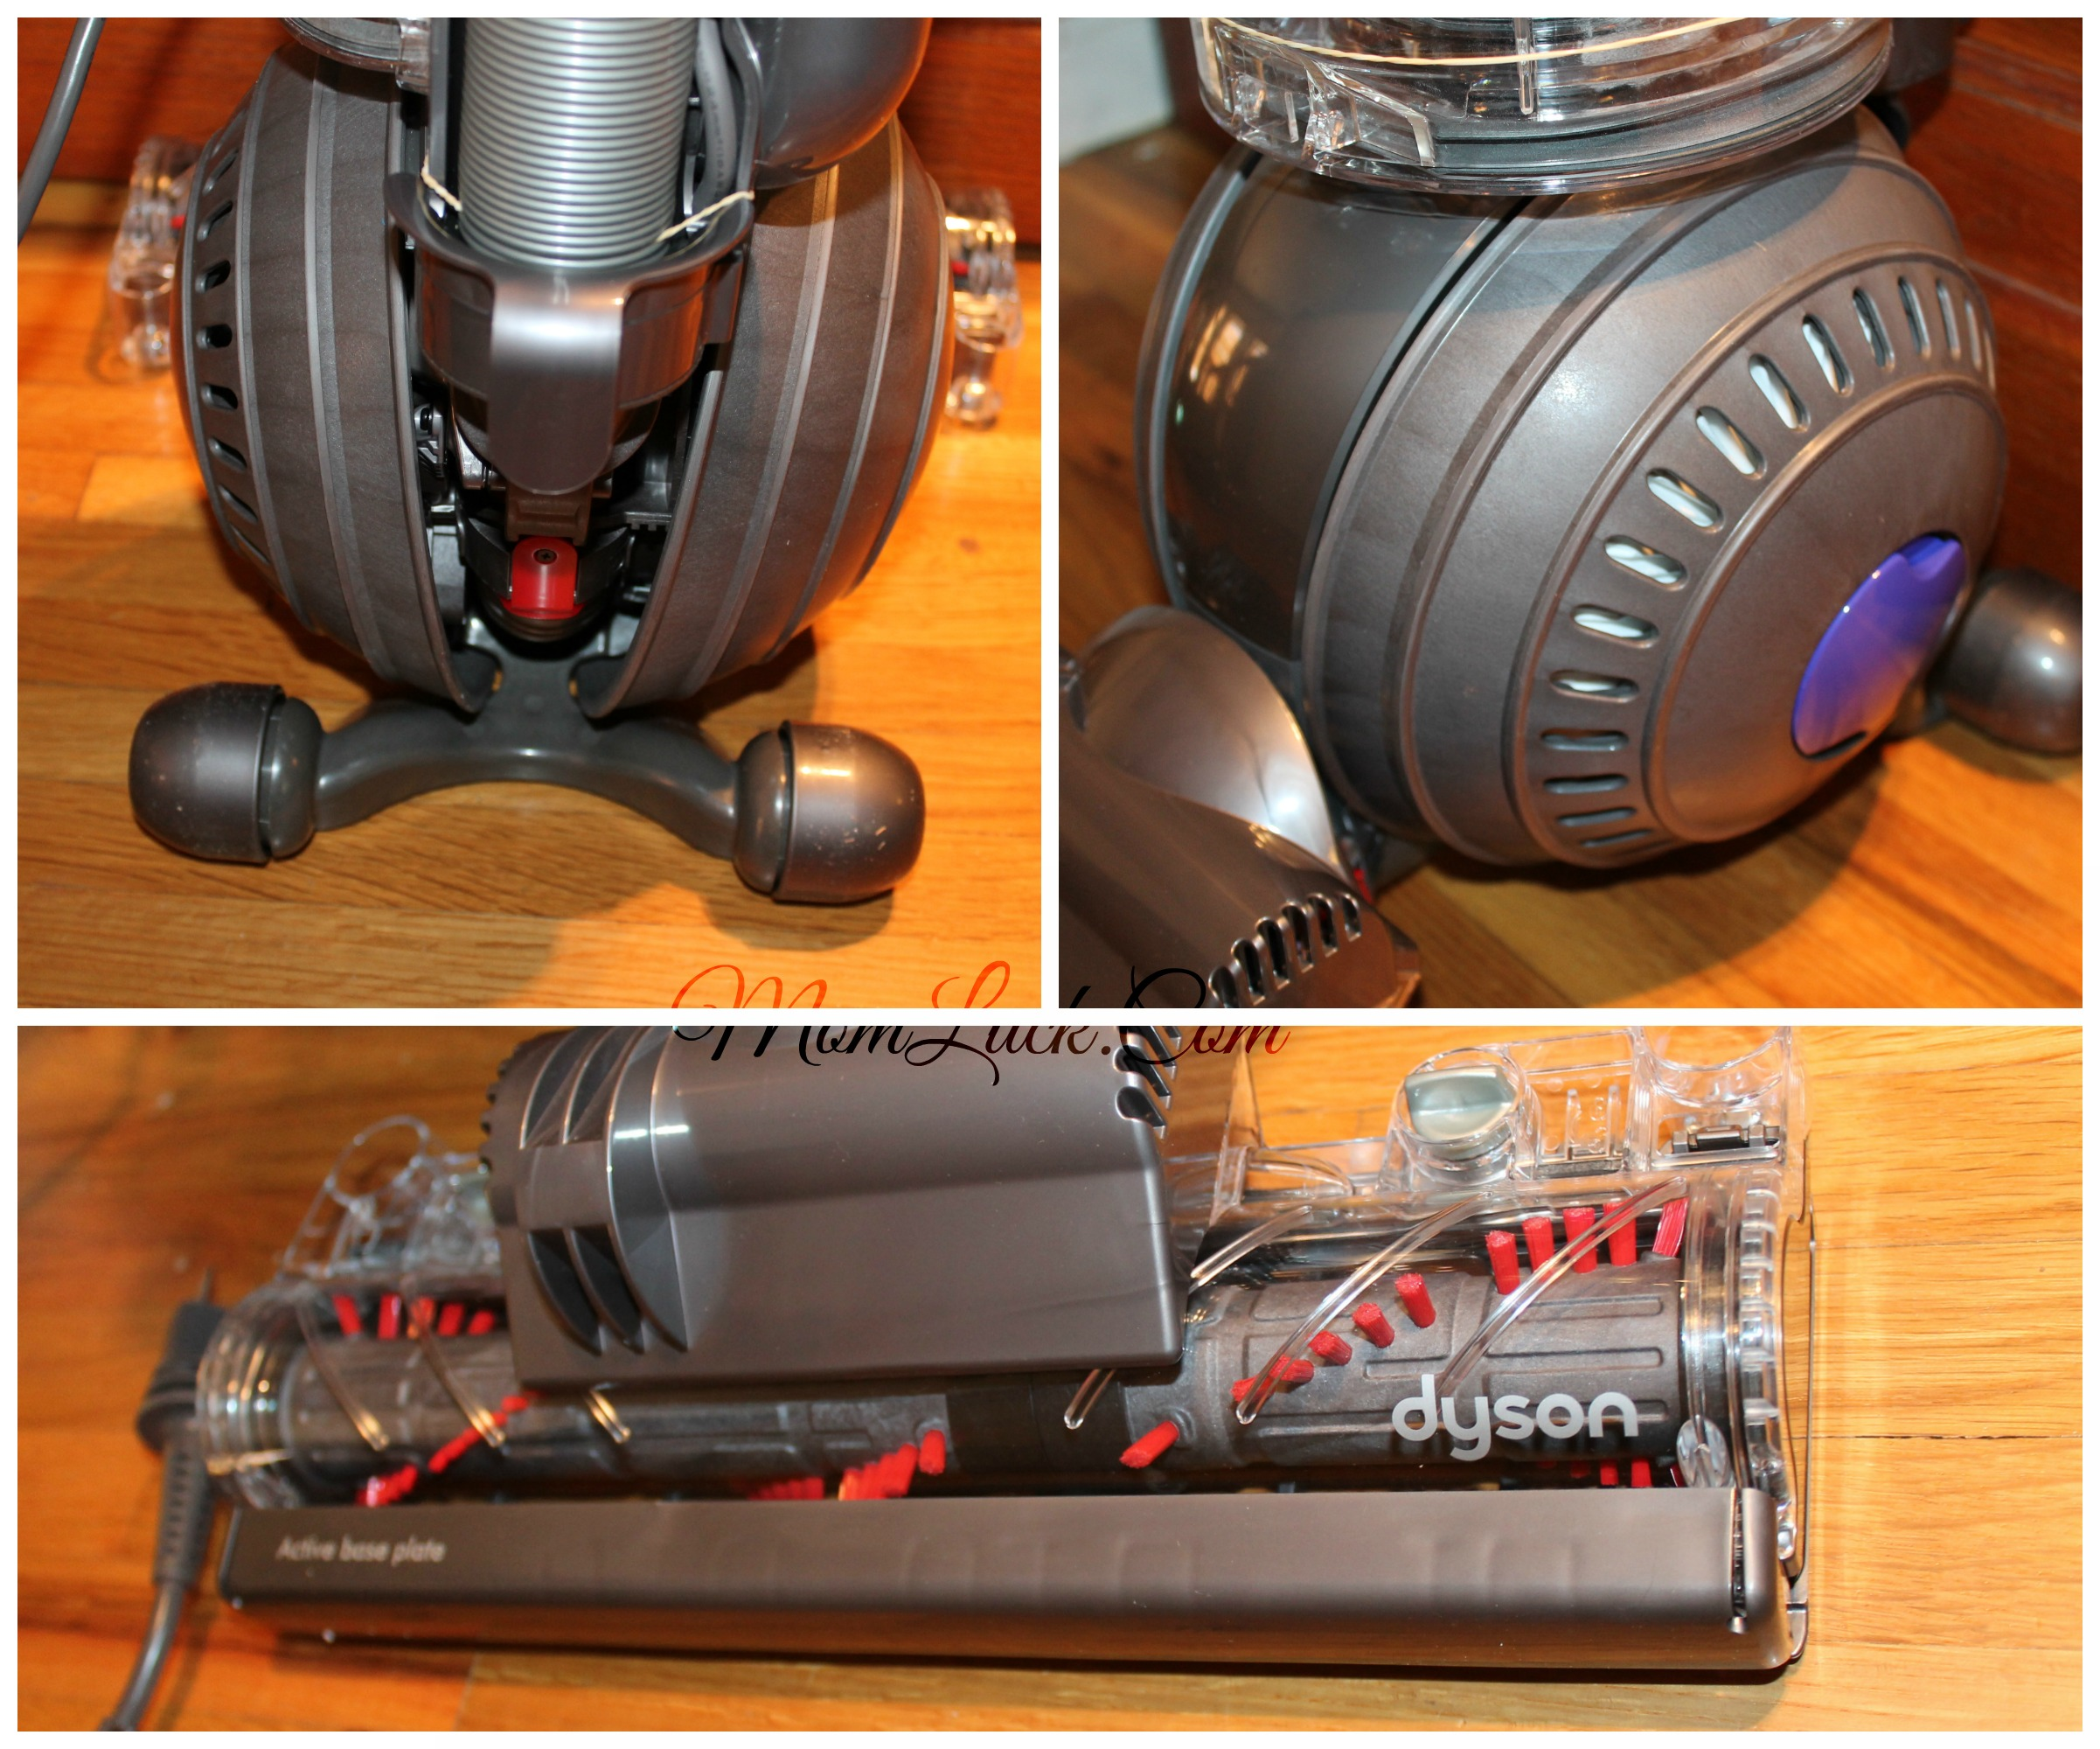 Dyson Dc41 Animal Complete Vacuum Review